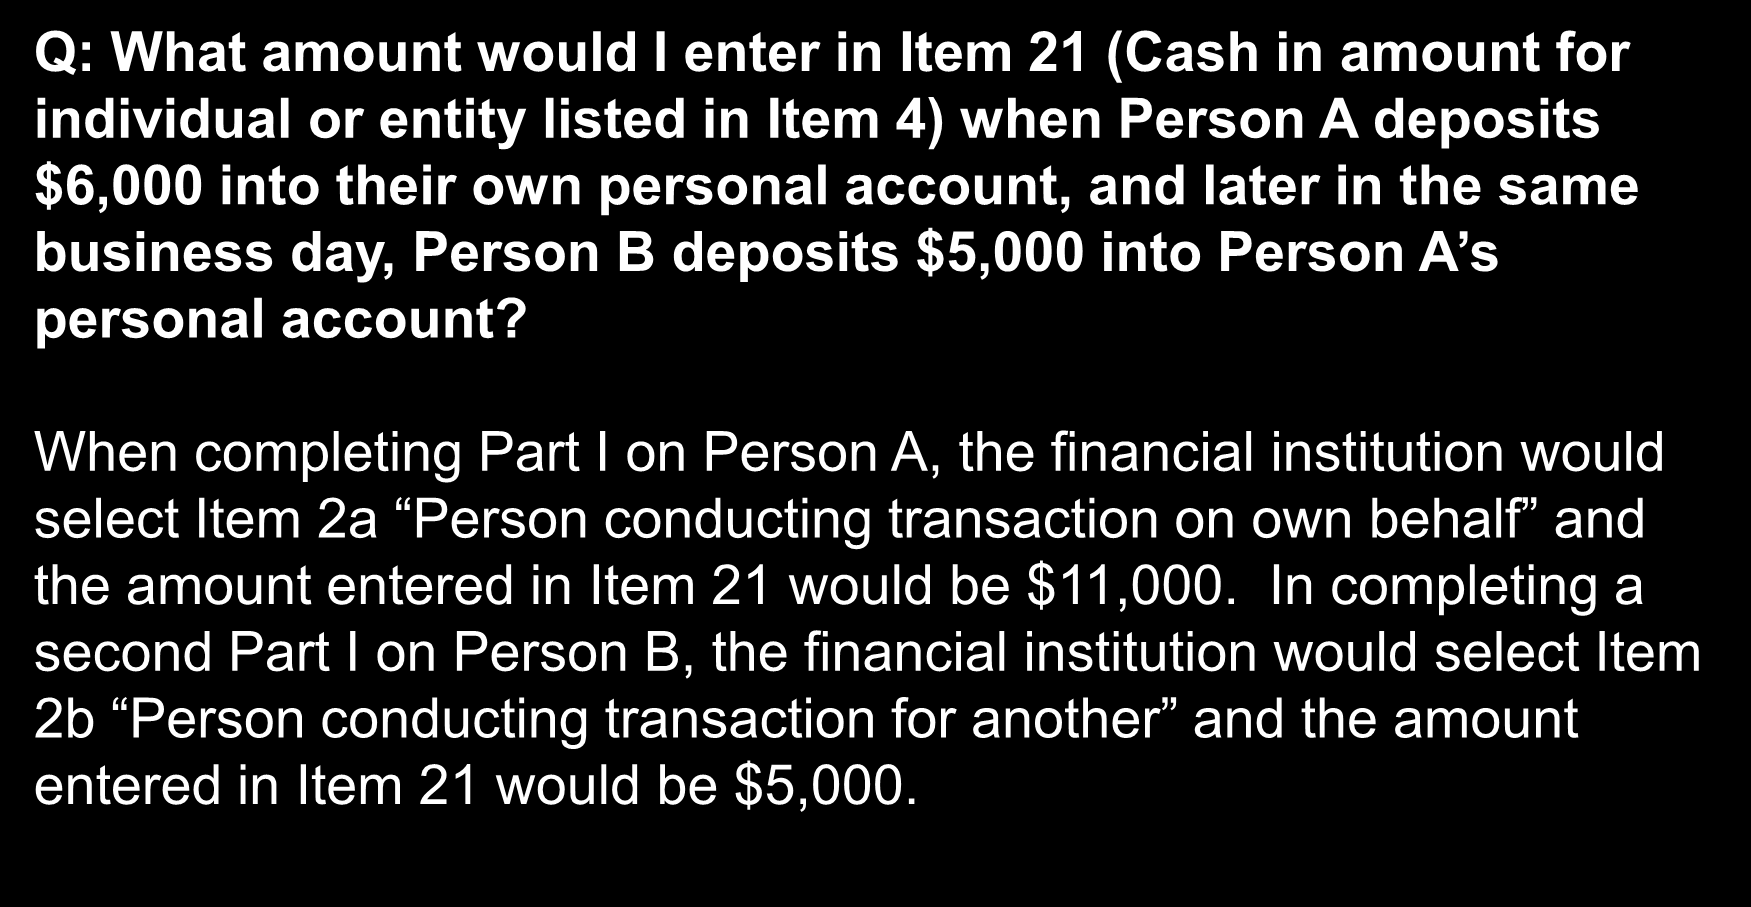 Frequently Asked Questions Q: What amount would I enter in Item 21 (Cash in amount for individual or entity listed in Item 4) when Person A deposits $6,000 into their own personal account, and later